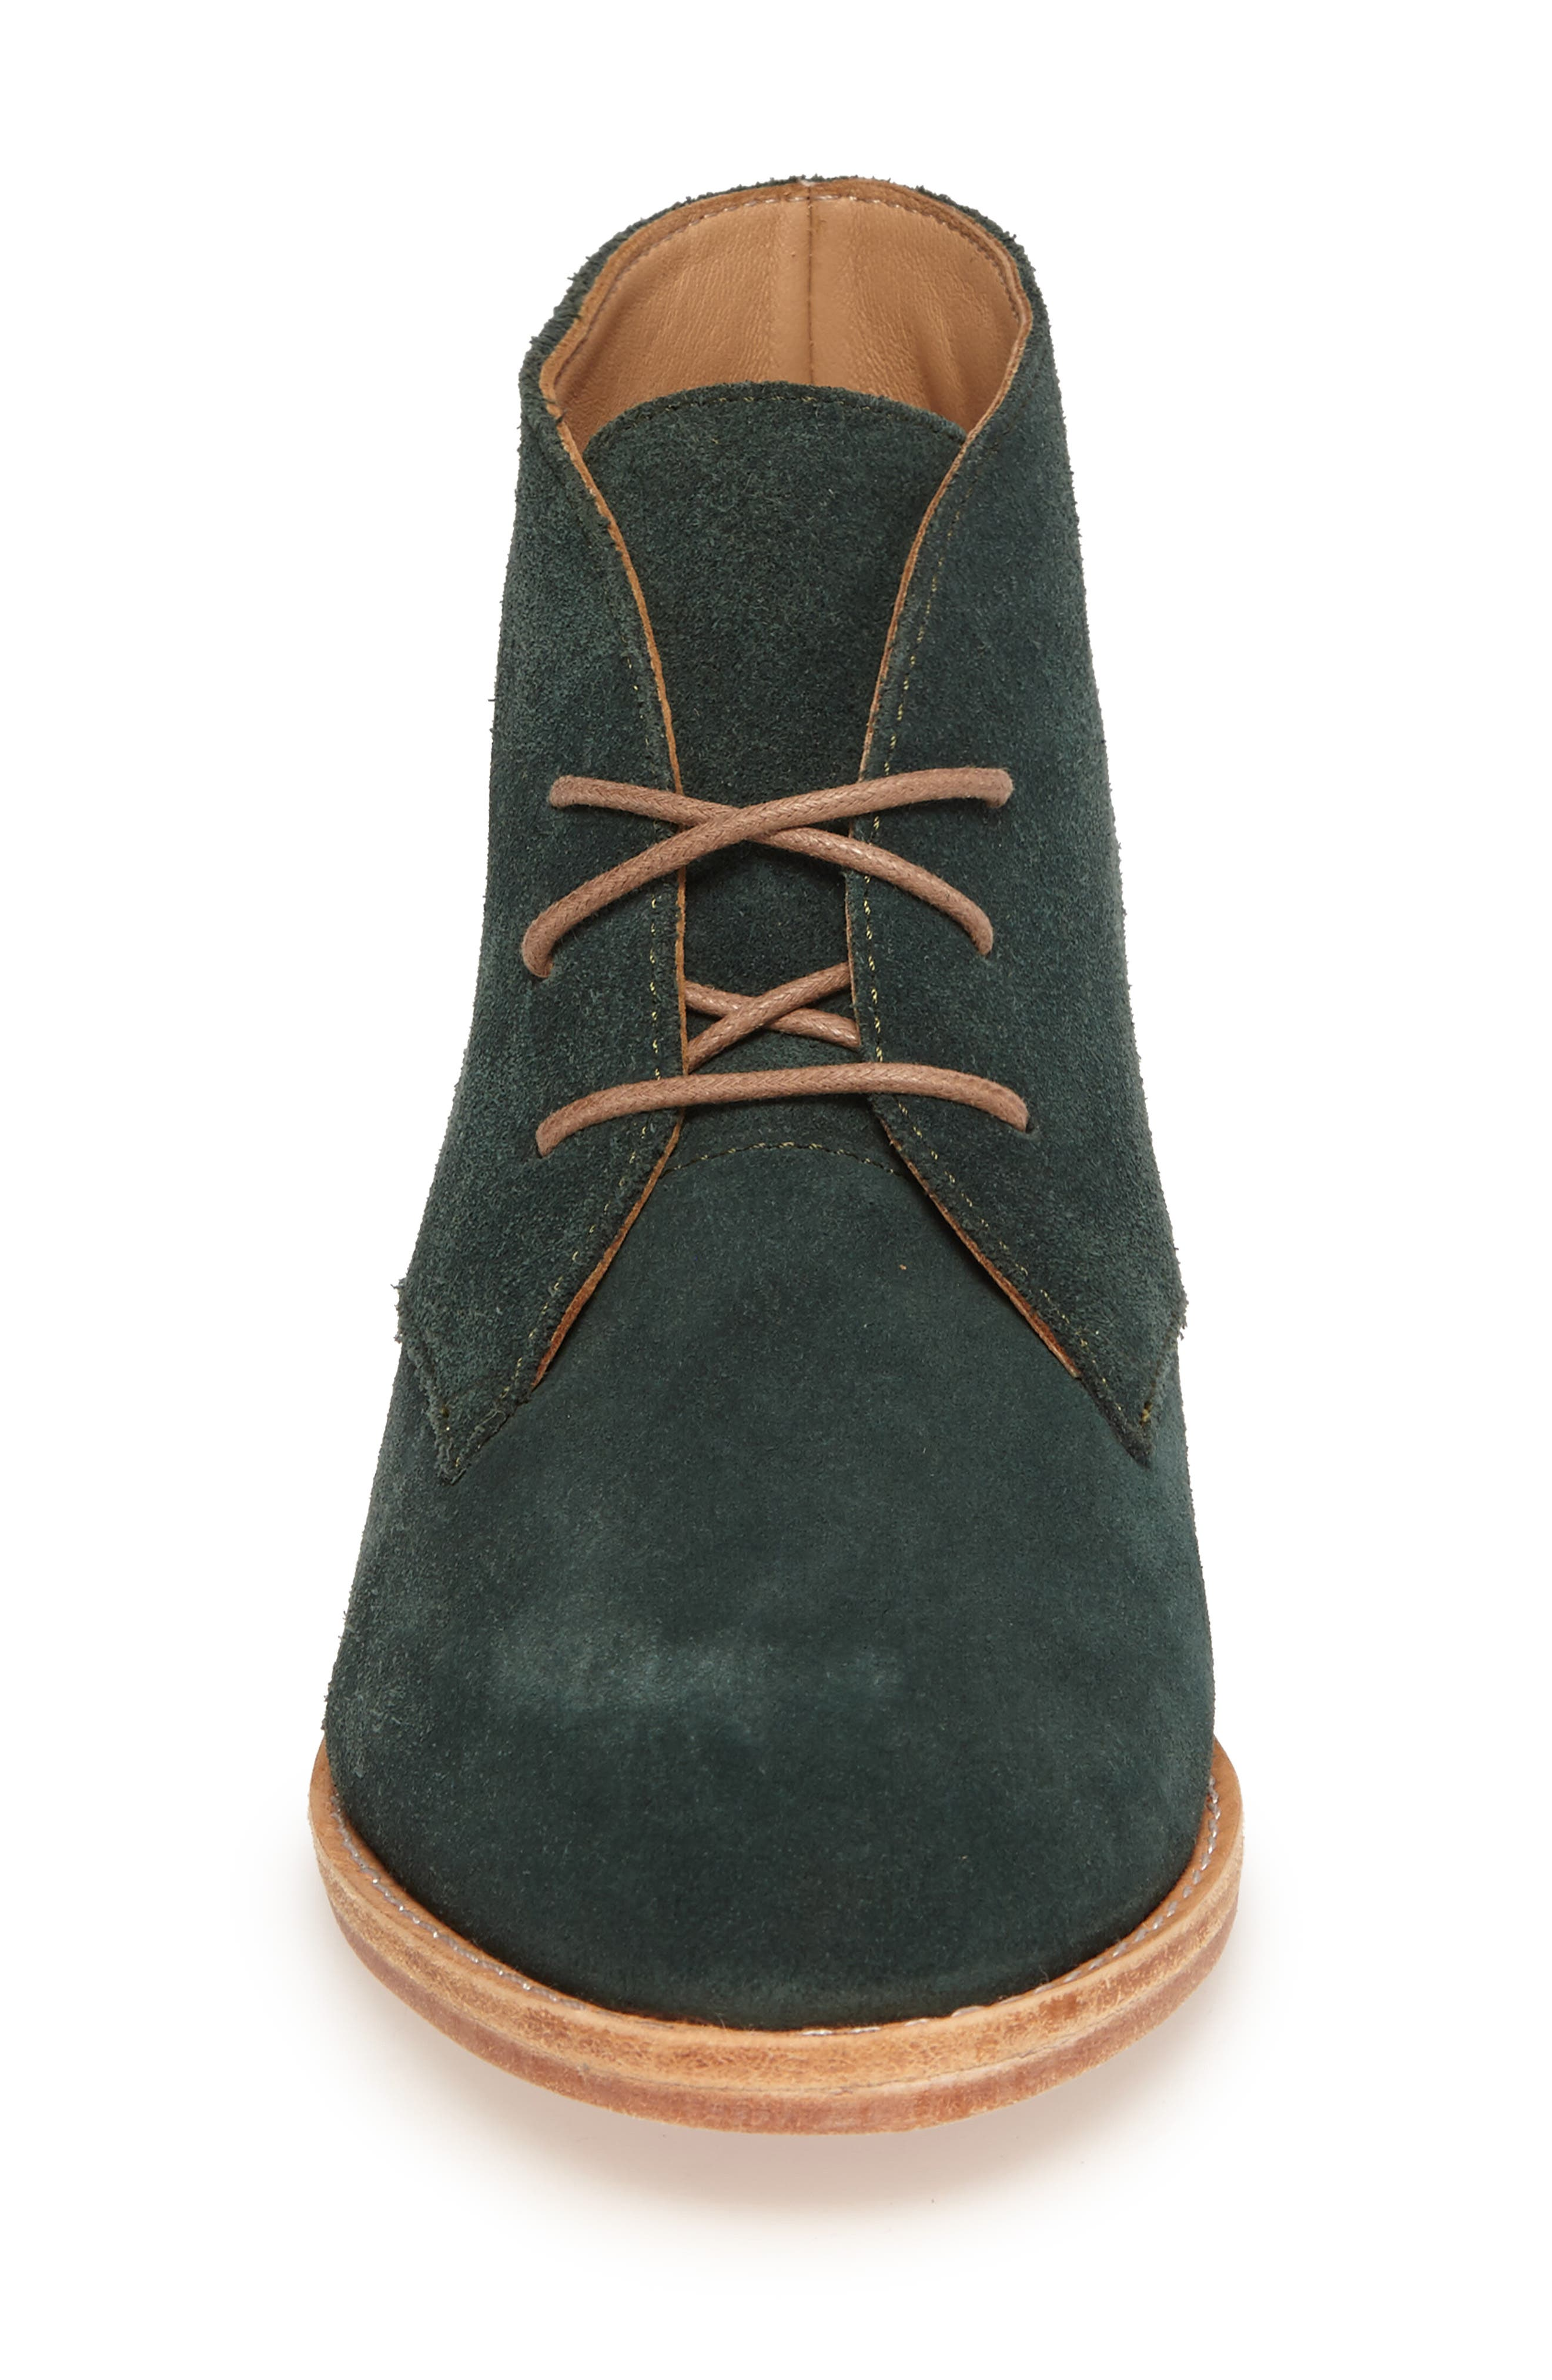 Manuela Chukka Boot,                             Alternate thumbnail 4, color,                             Forest Green Suede